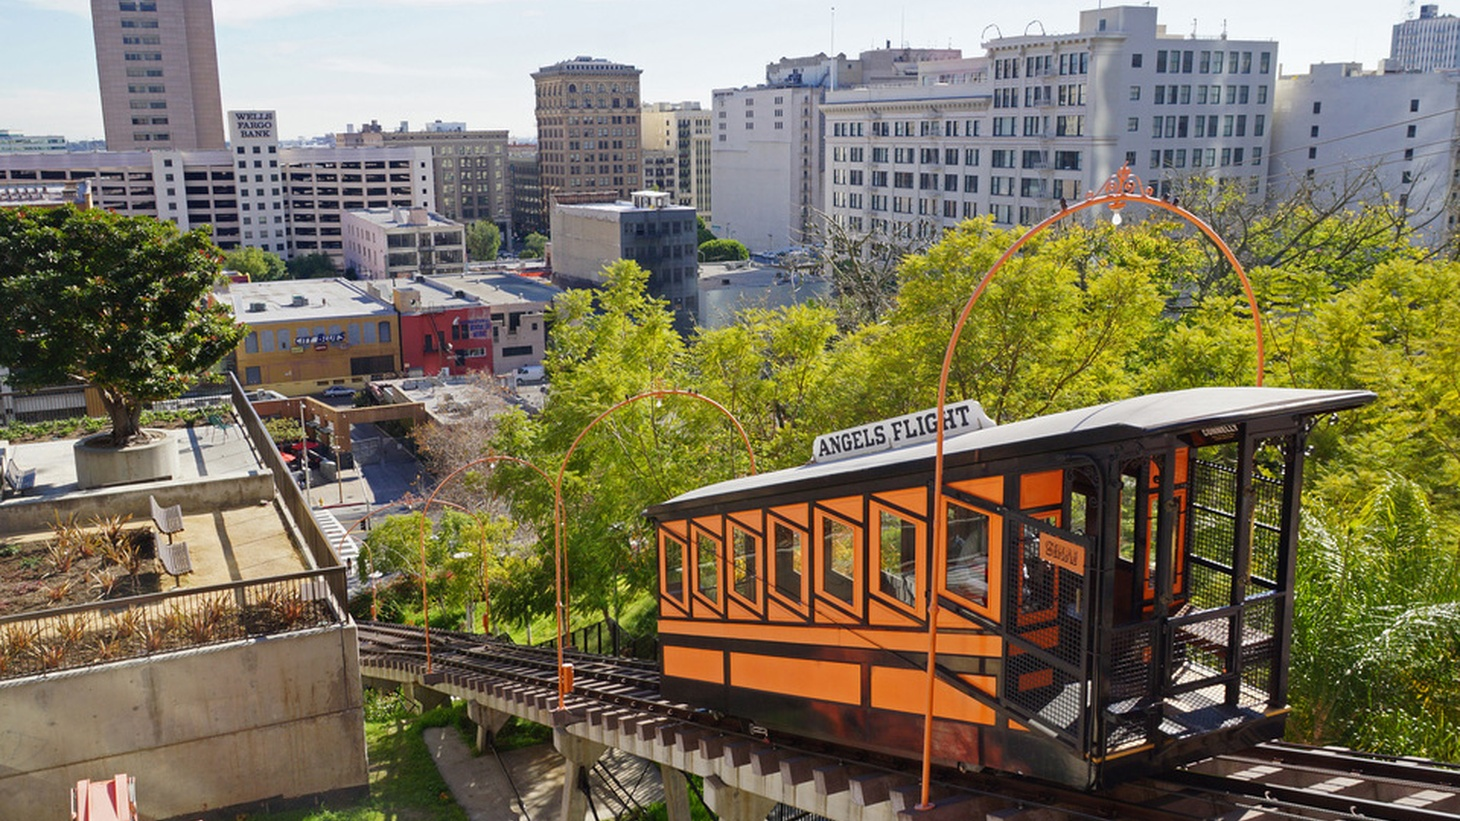 A downtown Los Angeles landmark returns this week. Starting Thursday, you'll once again be able to ride Angels Flight from Grand Central Market to the top of Bunker Hill and back. The newly-upgraded train has been dark for four years, following a series of derailments and other issues.